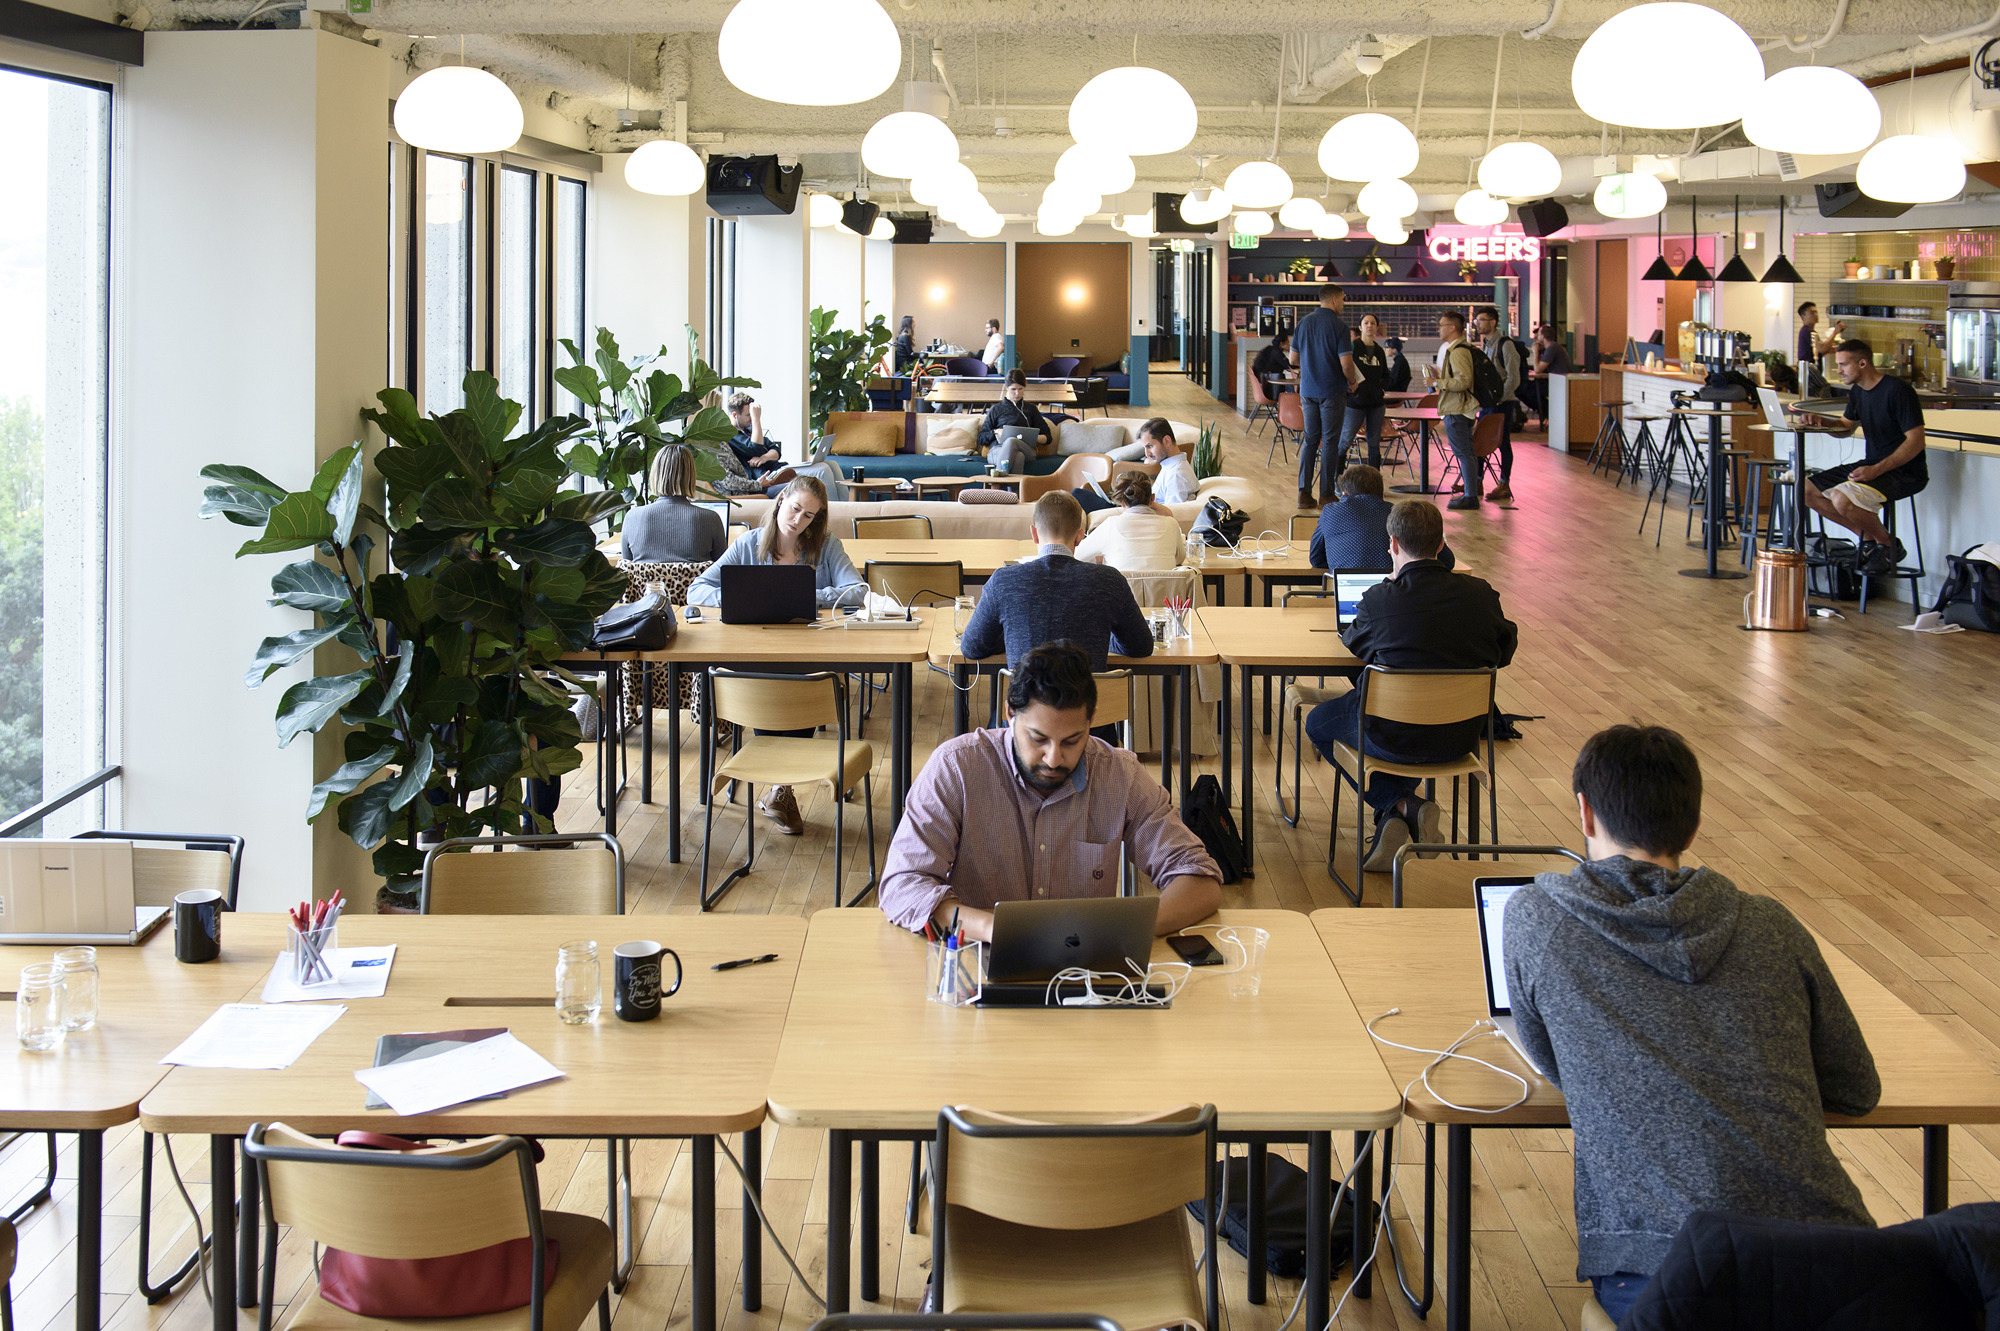 WeWork Is Said to Unveil IPO Filing as Soon as Next Week - Bloomberg